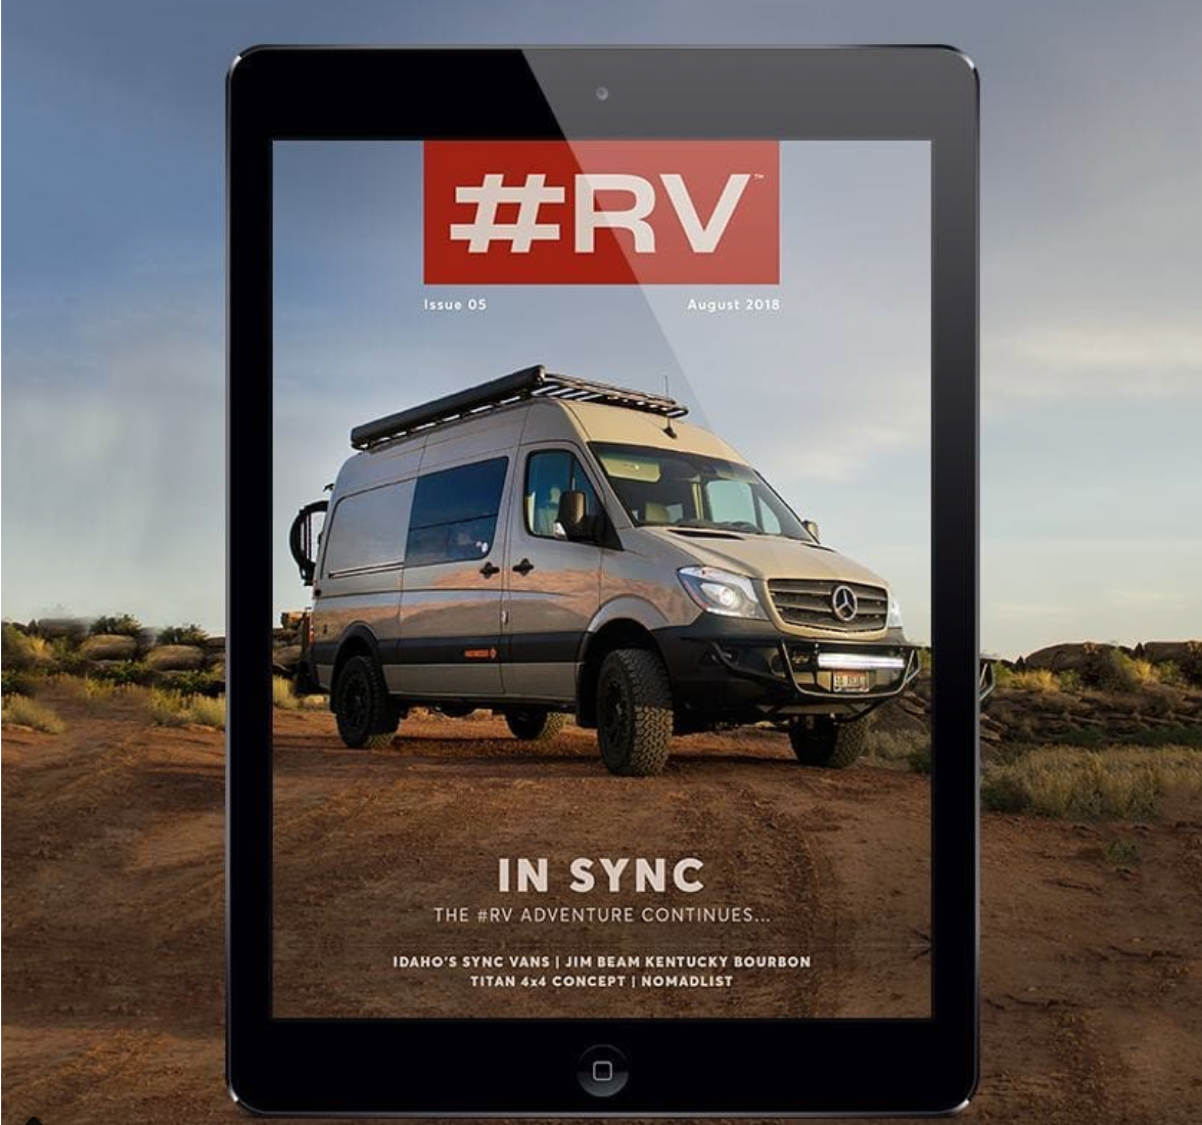 So excited to be working on #RV Magazine! Give it a read and let us know what you think.